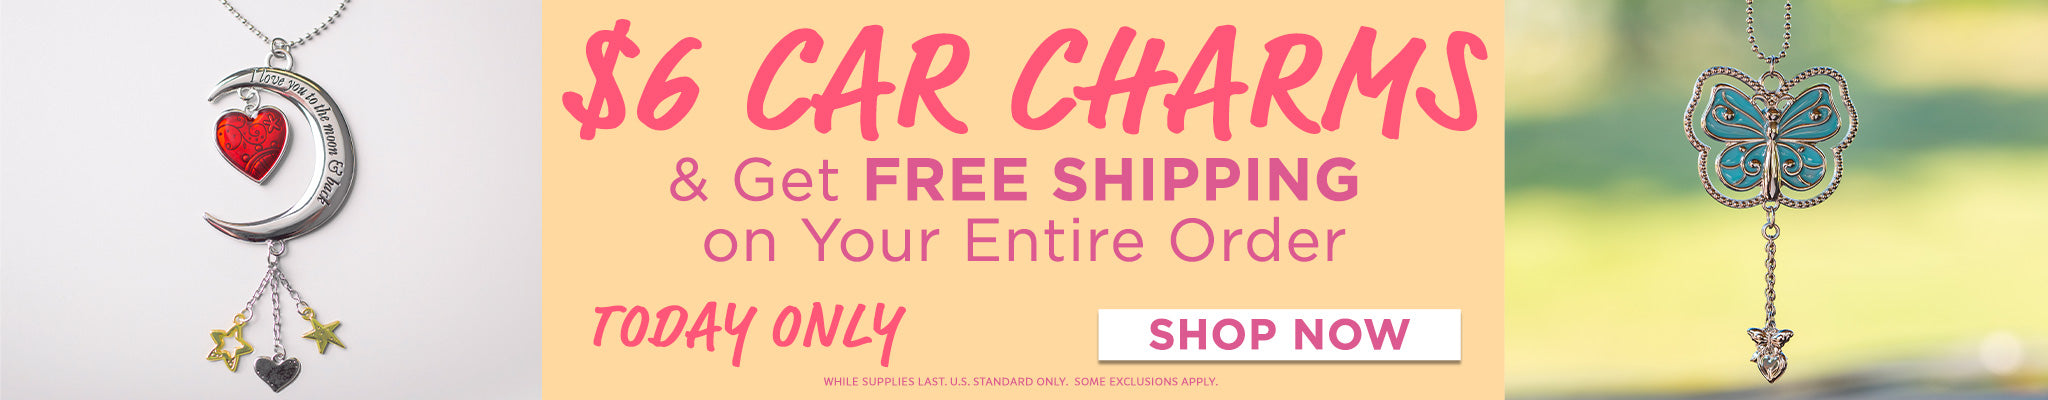 $6 Car Charms | Get Free Shipping On Your Entire Order!